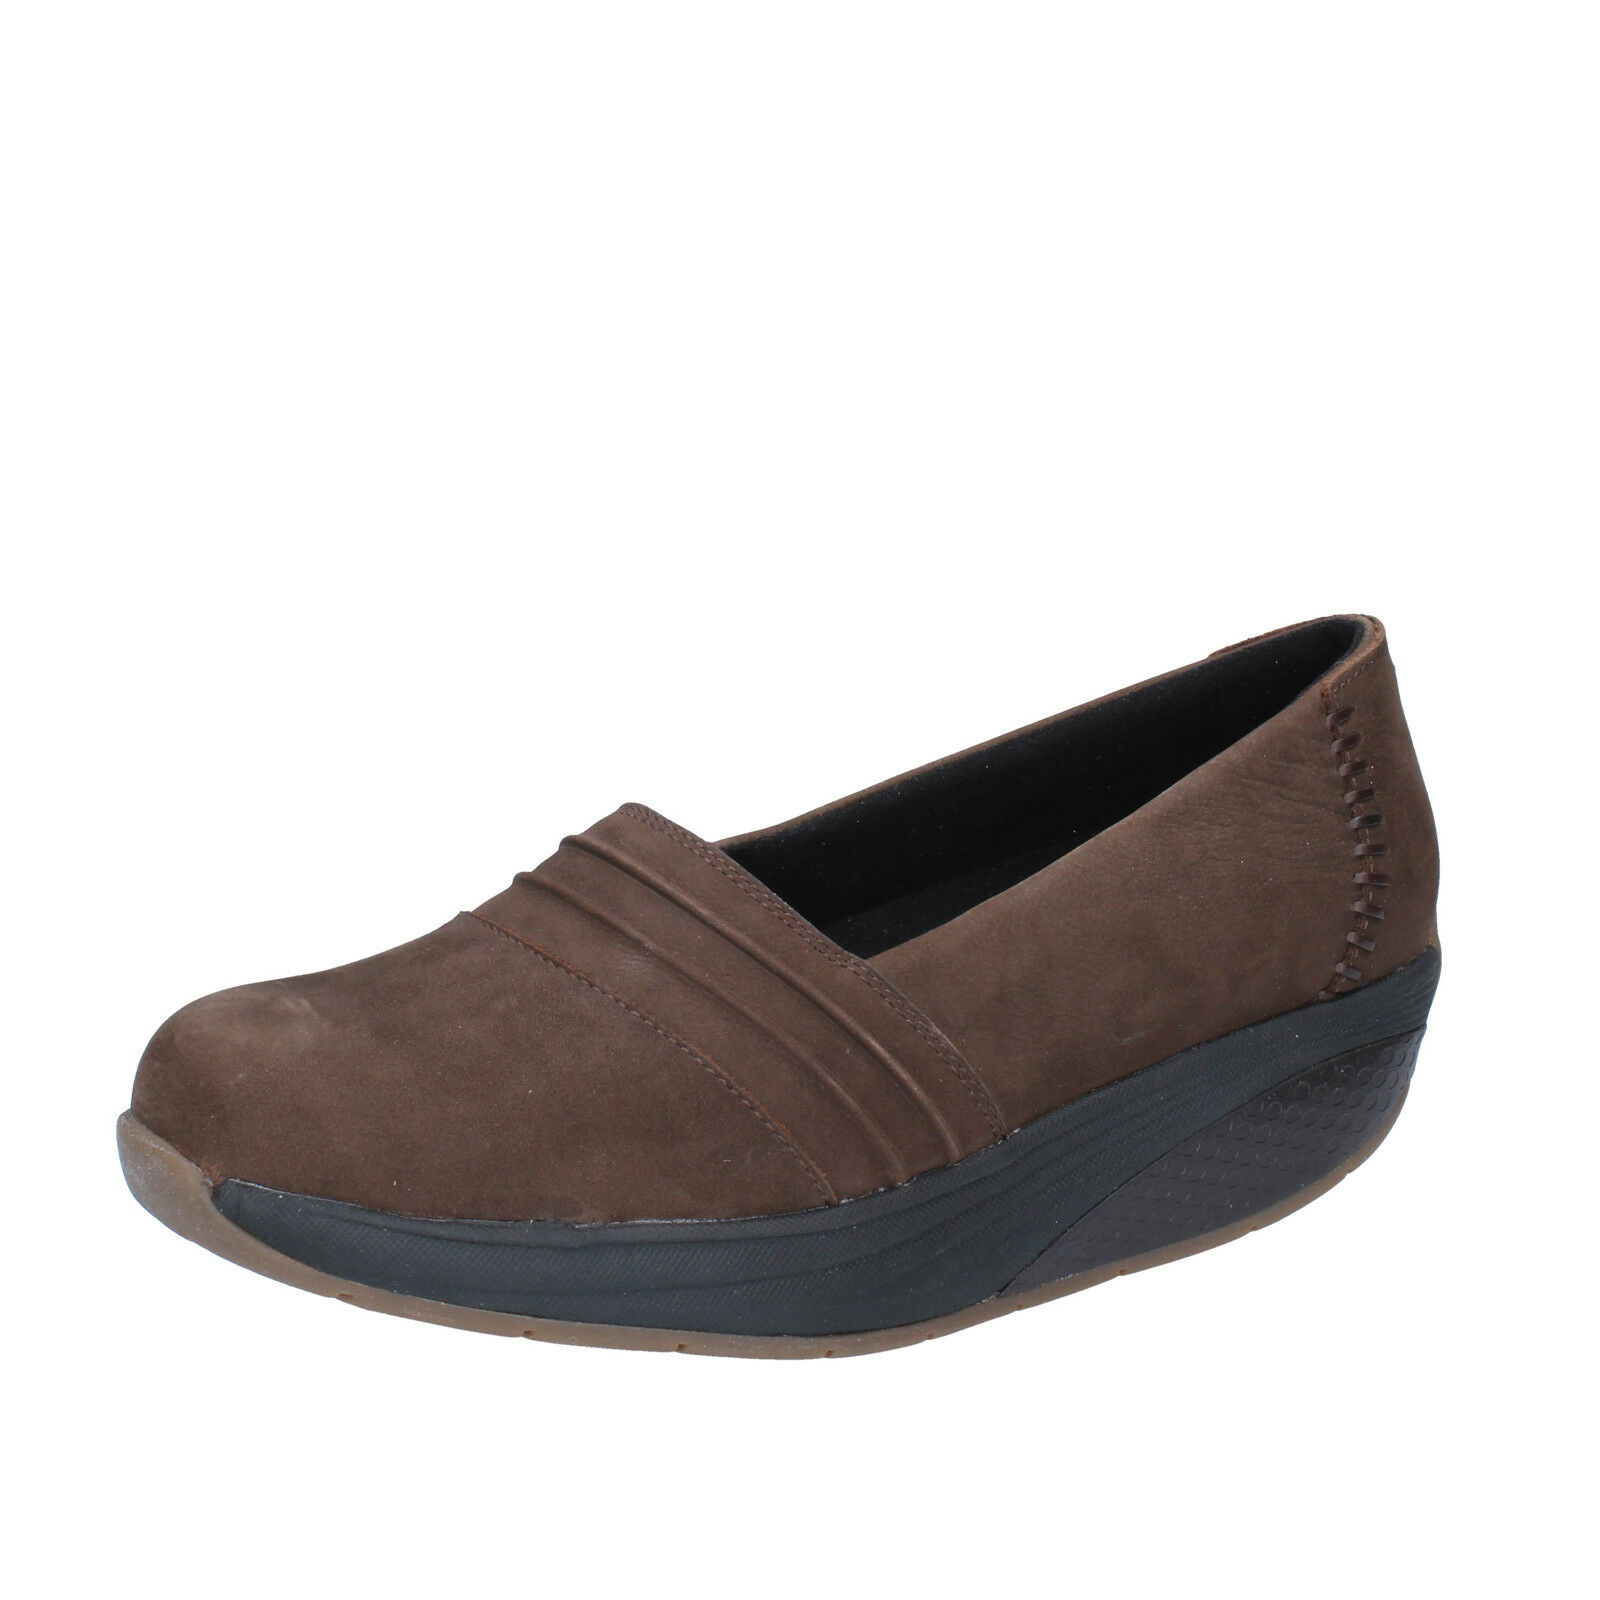 women's shoes MBT 9 / 9,5 () loafers brown nabuk performance BY686-40